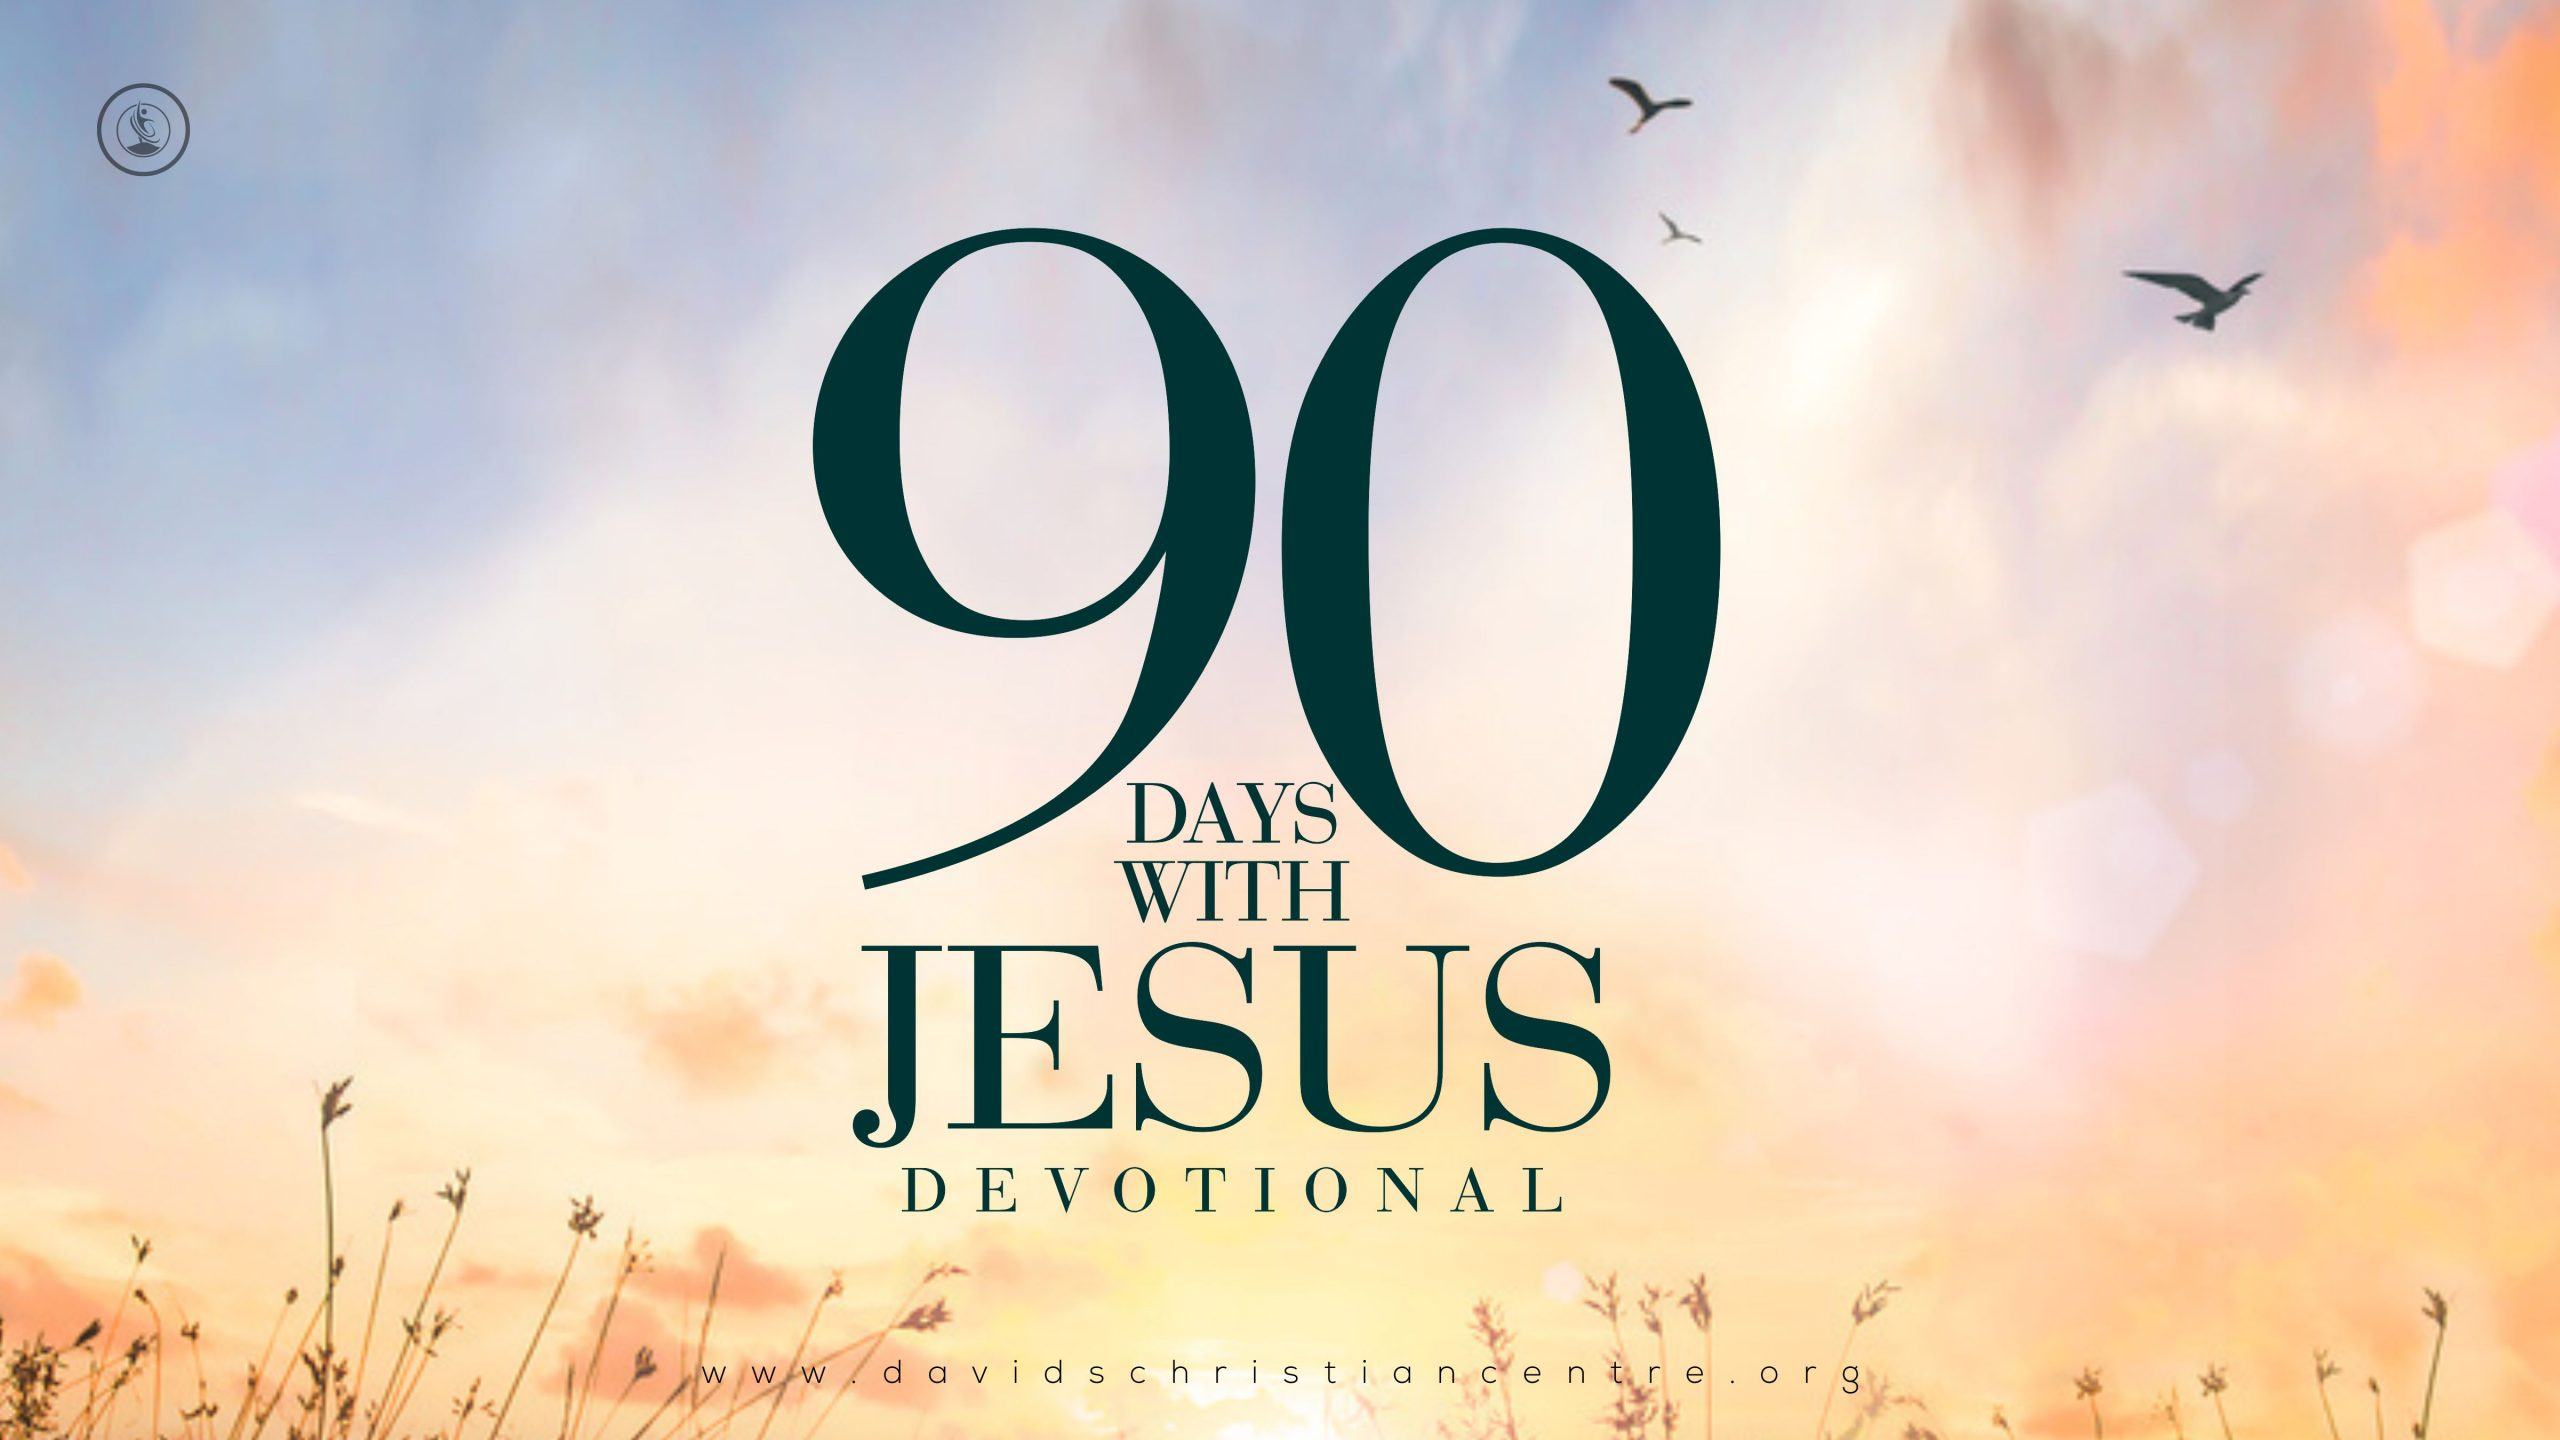 90 DAYS WITH JESUS DEVOTIONAL DAY 50